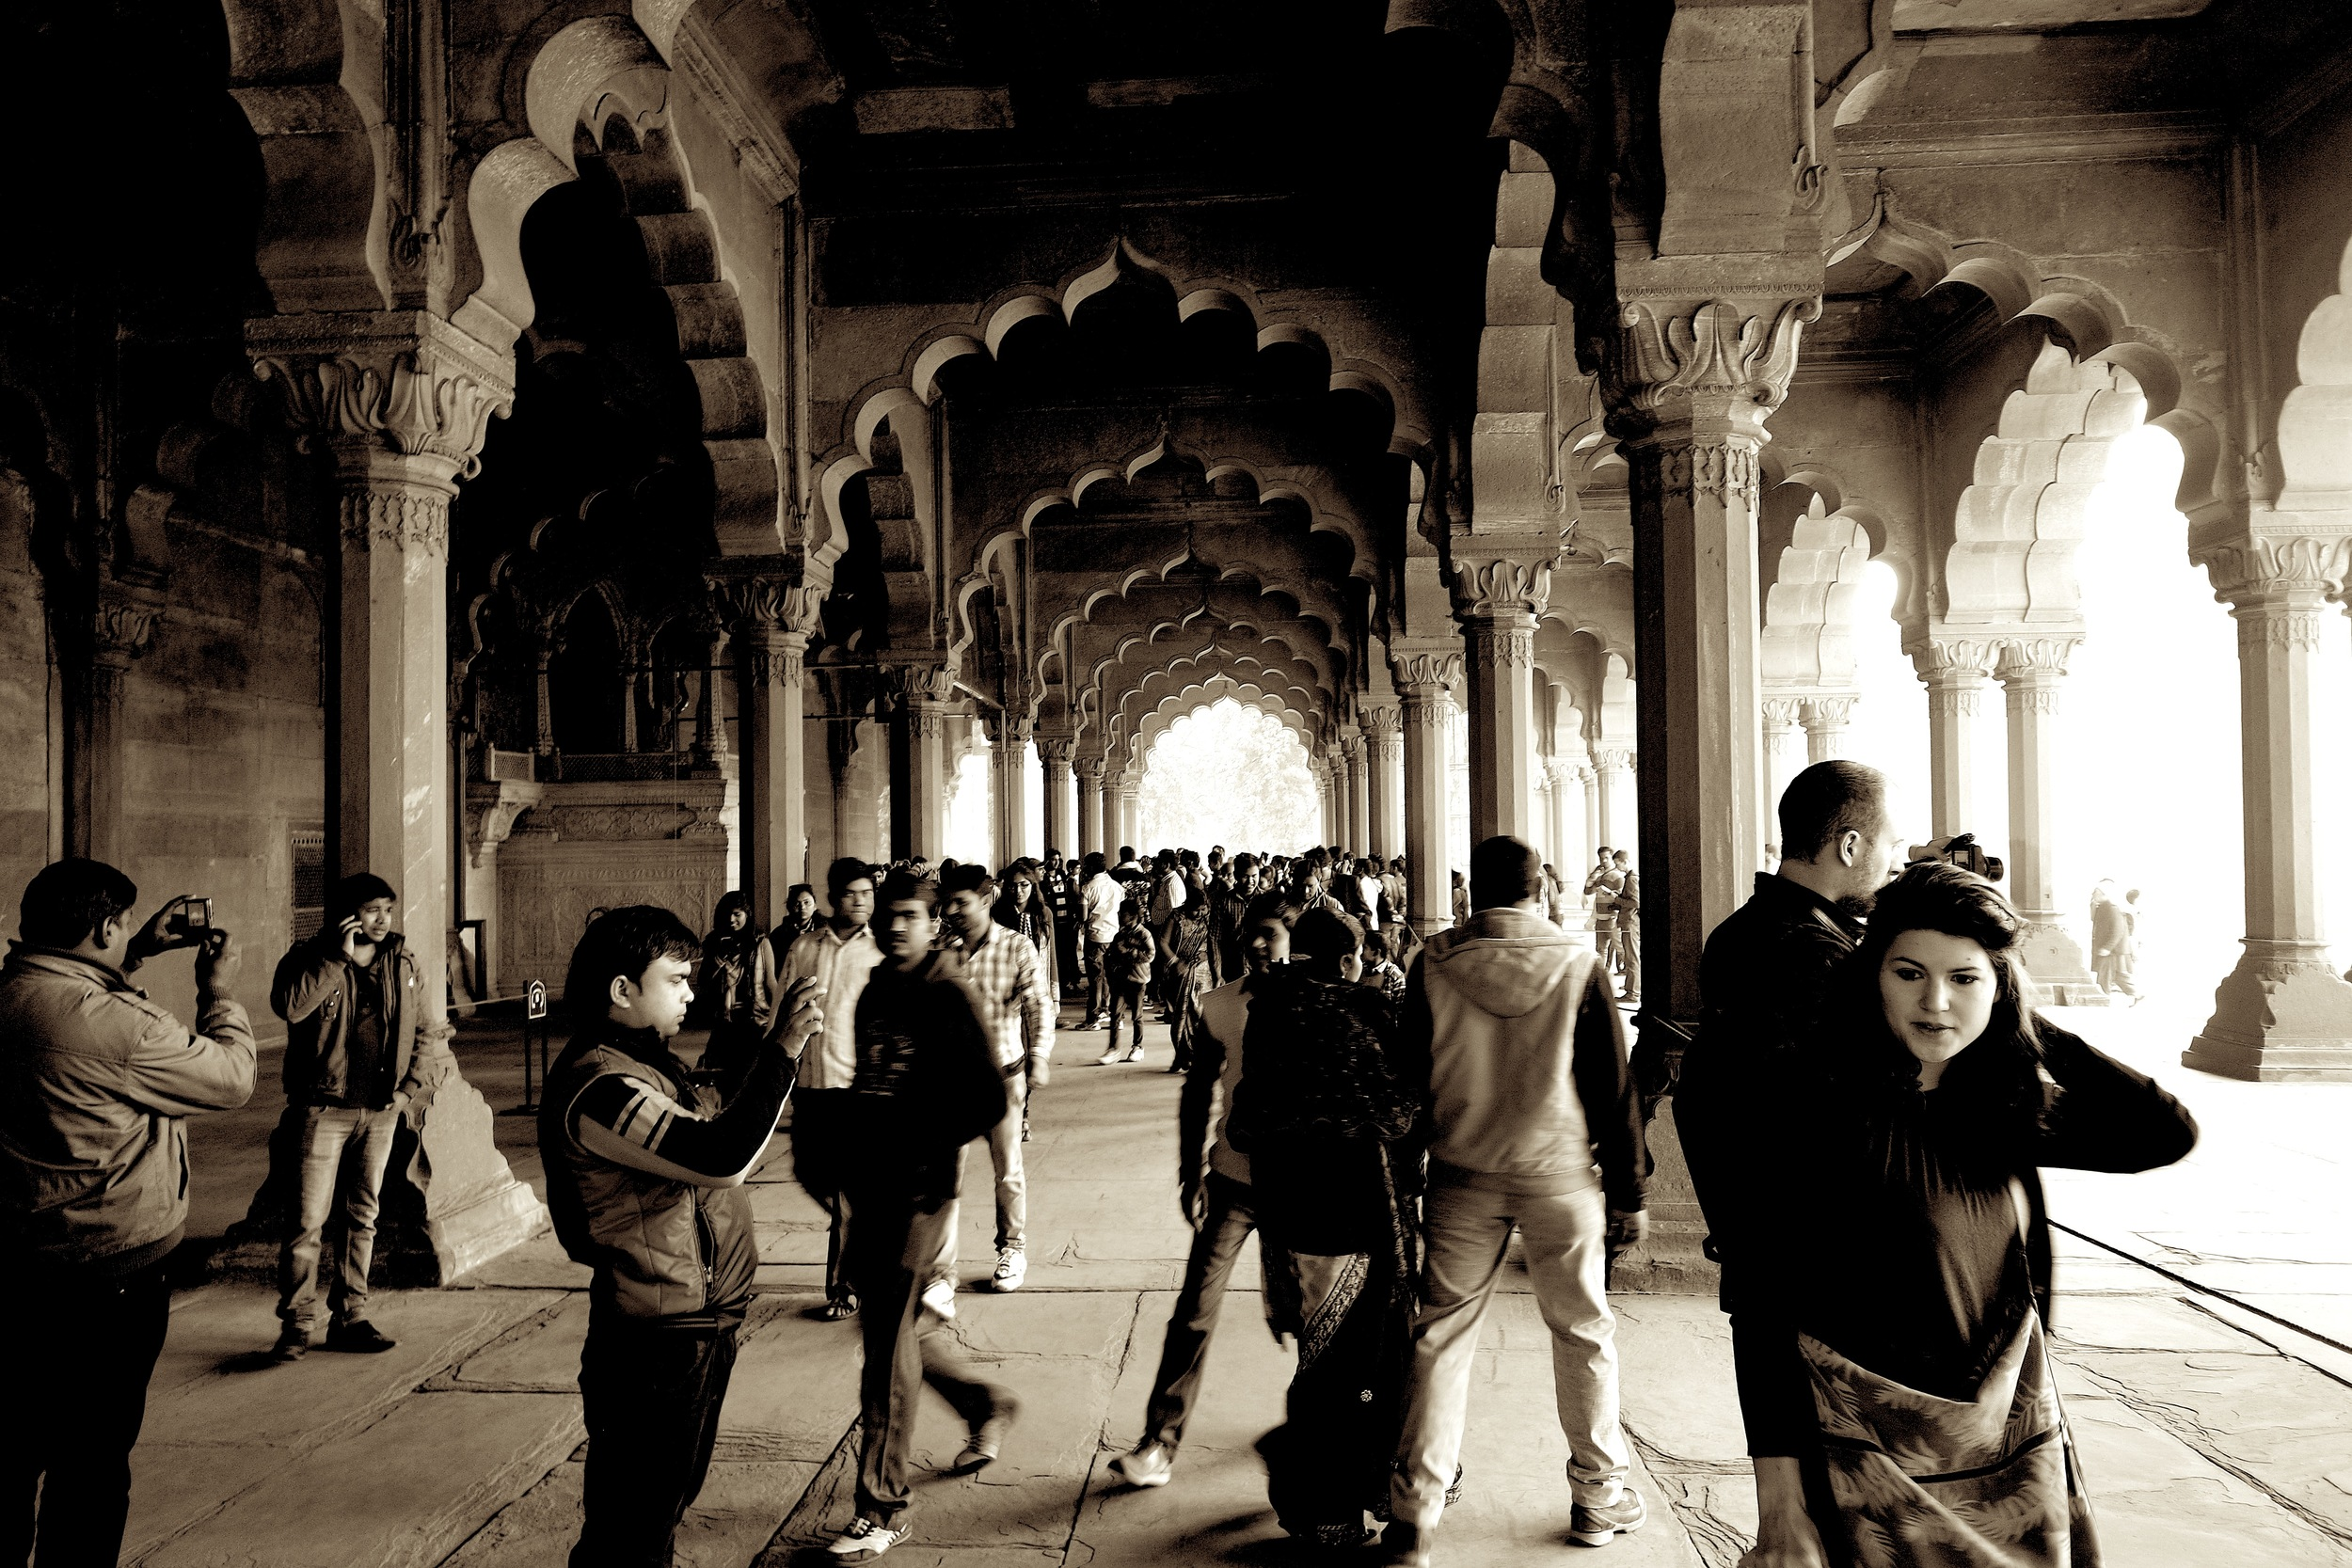 A crowded arcade at Delhi's Red Fort